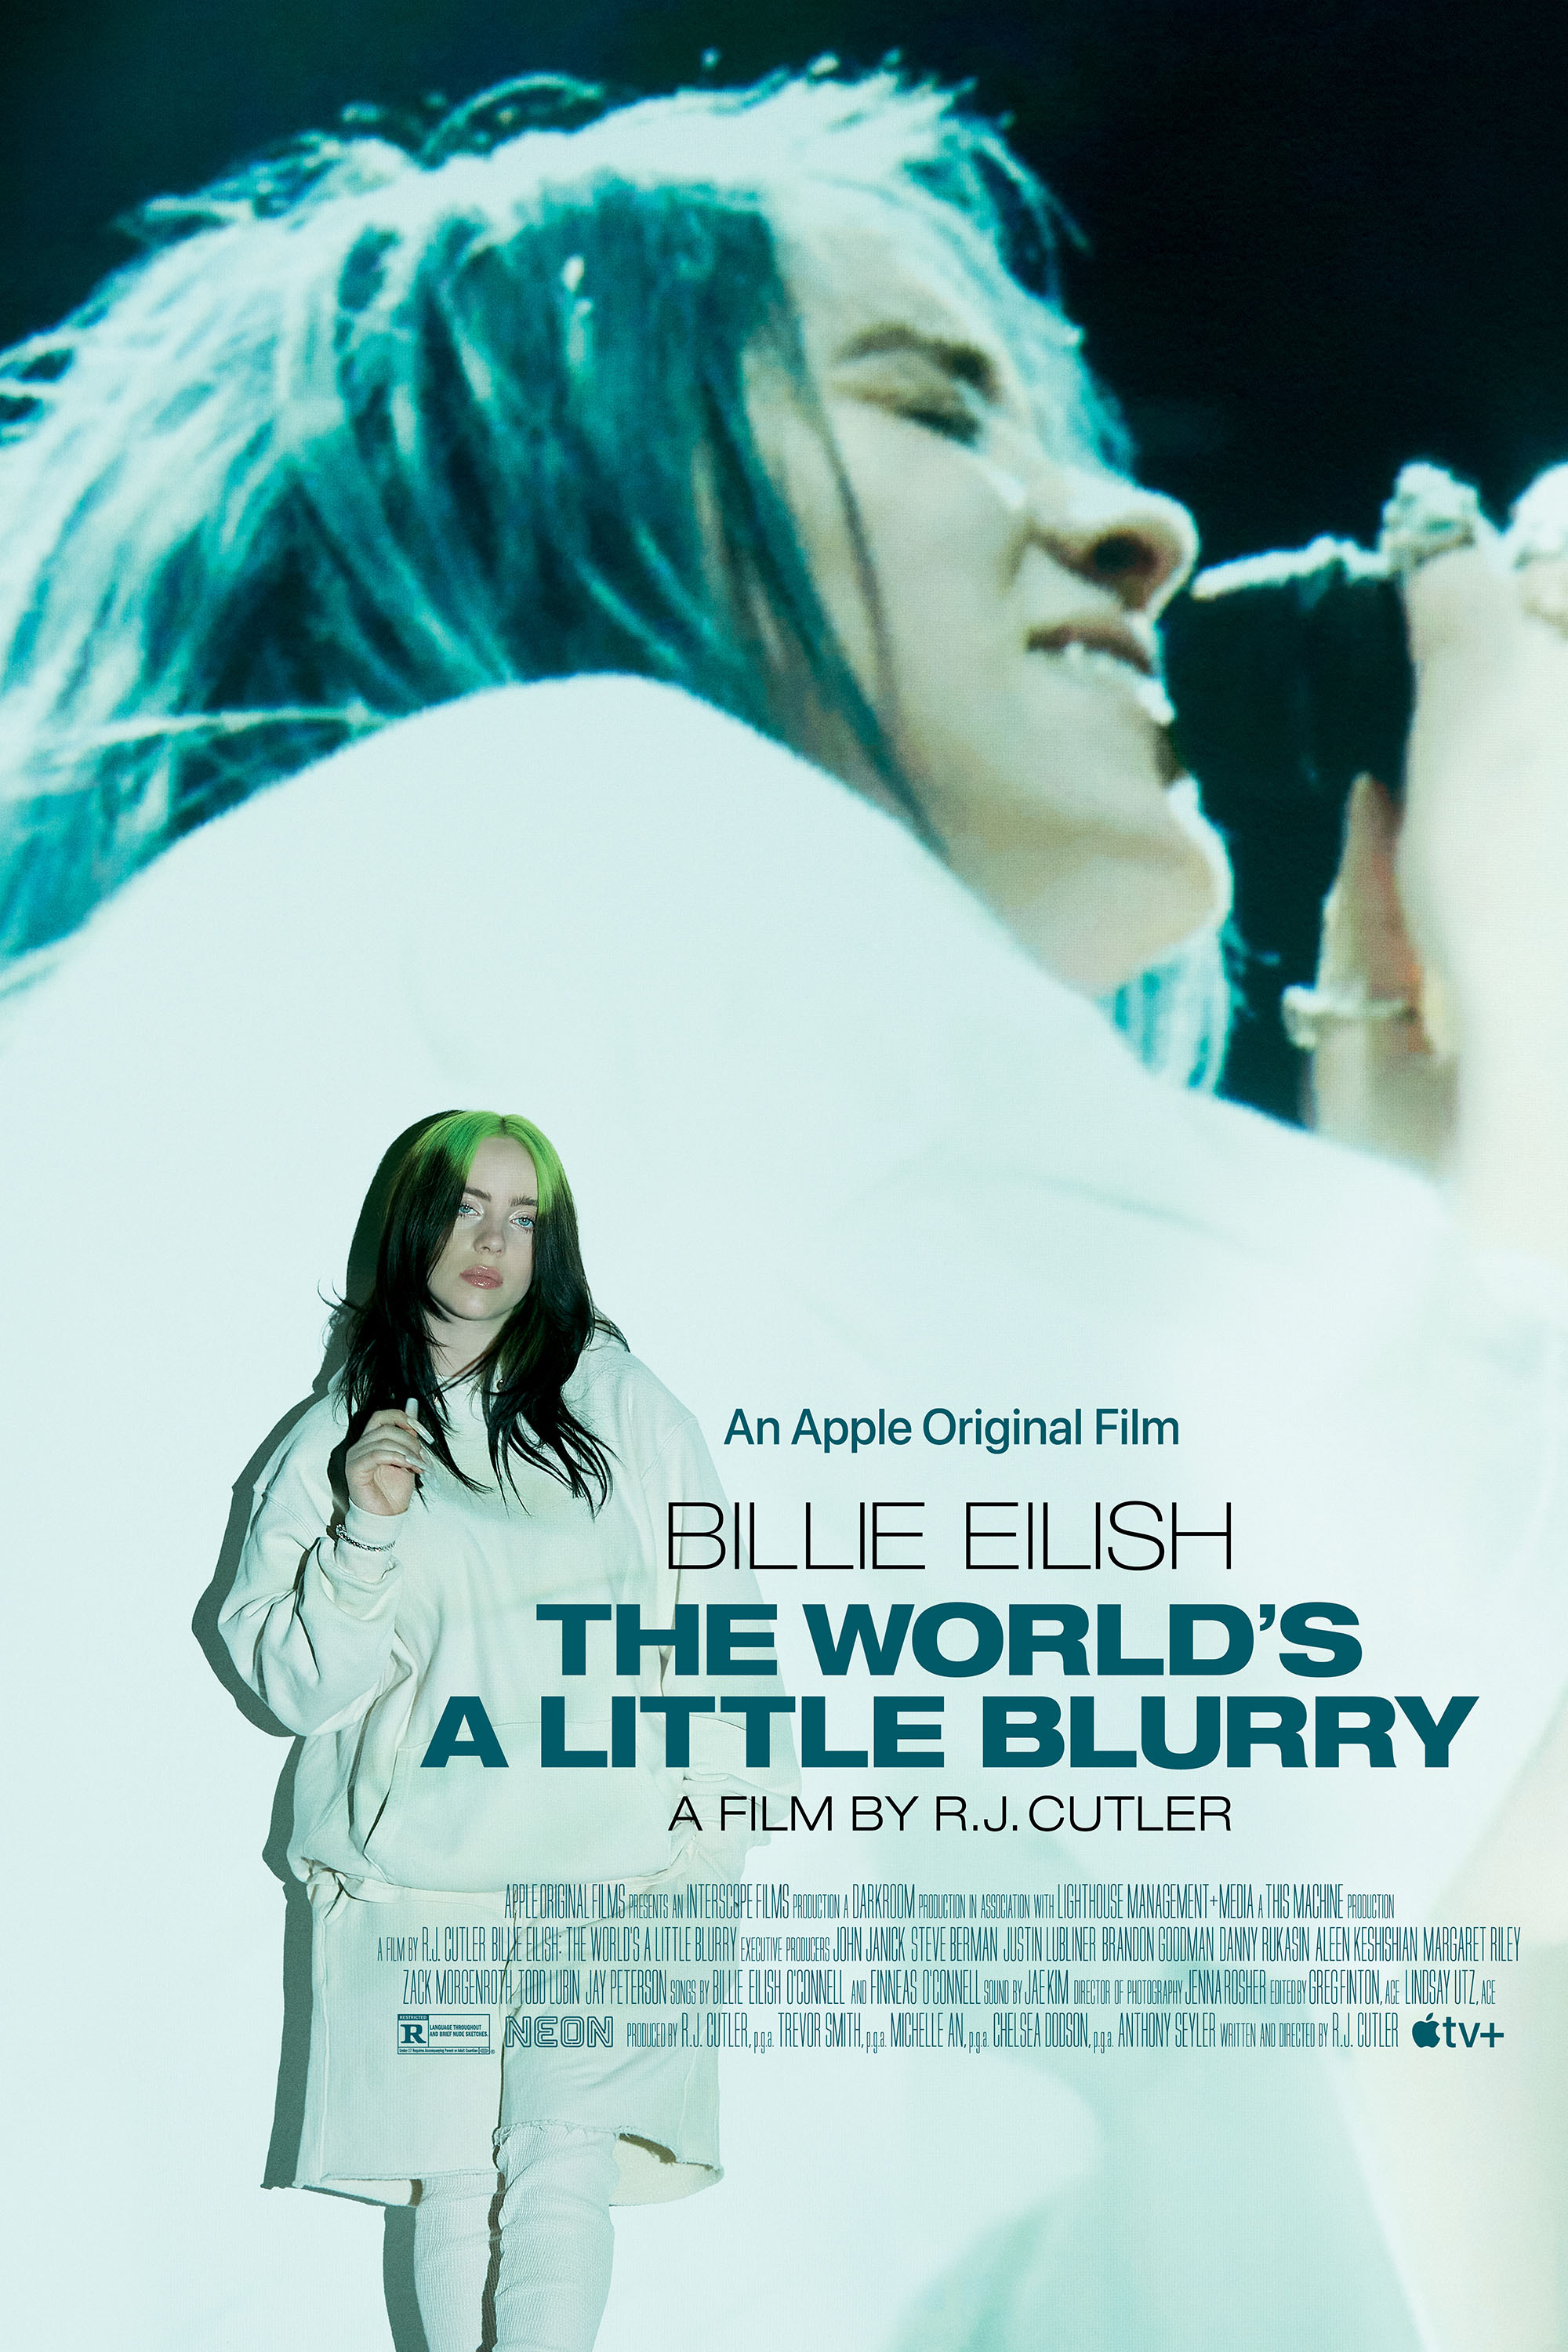 Still of Billie Eilish: The World's A Little Blurry